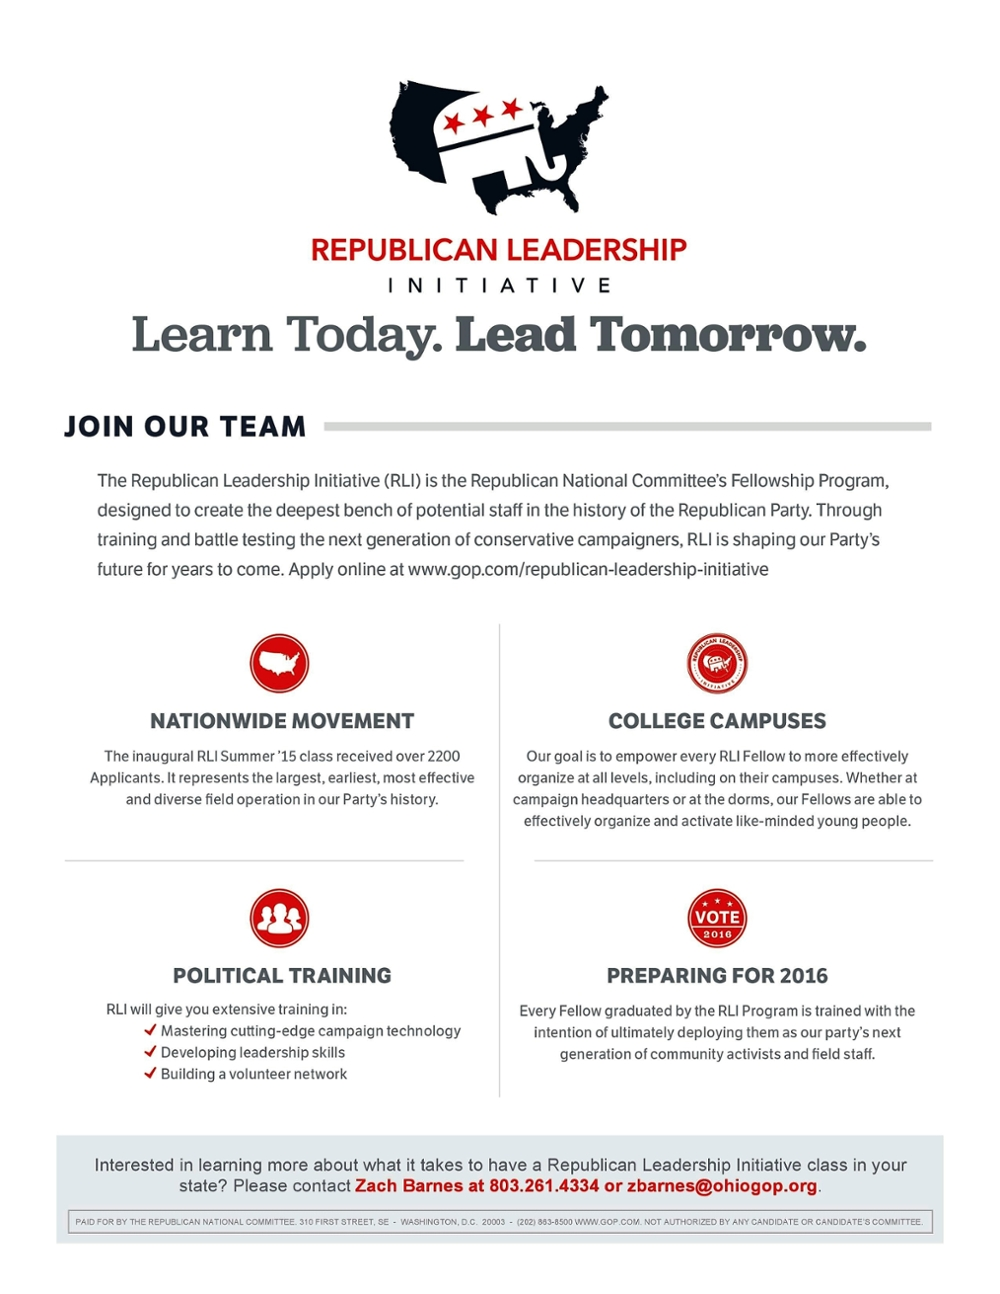 Republican Leadership Initiative